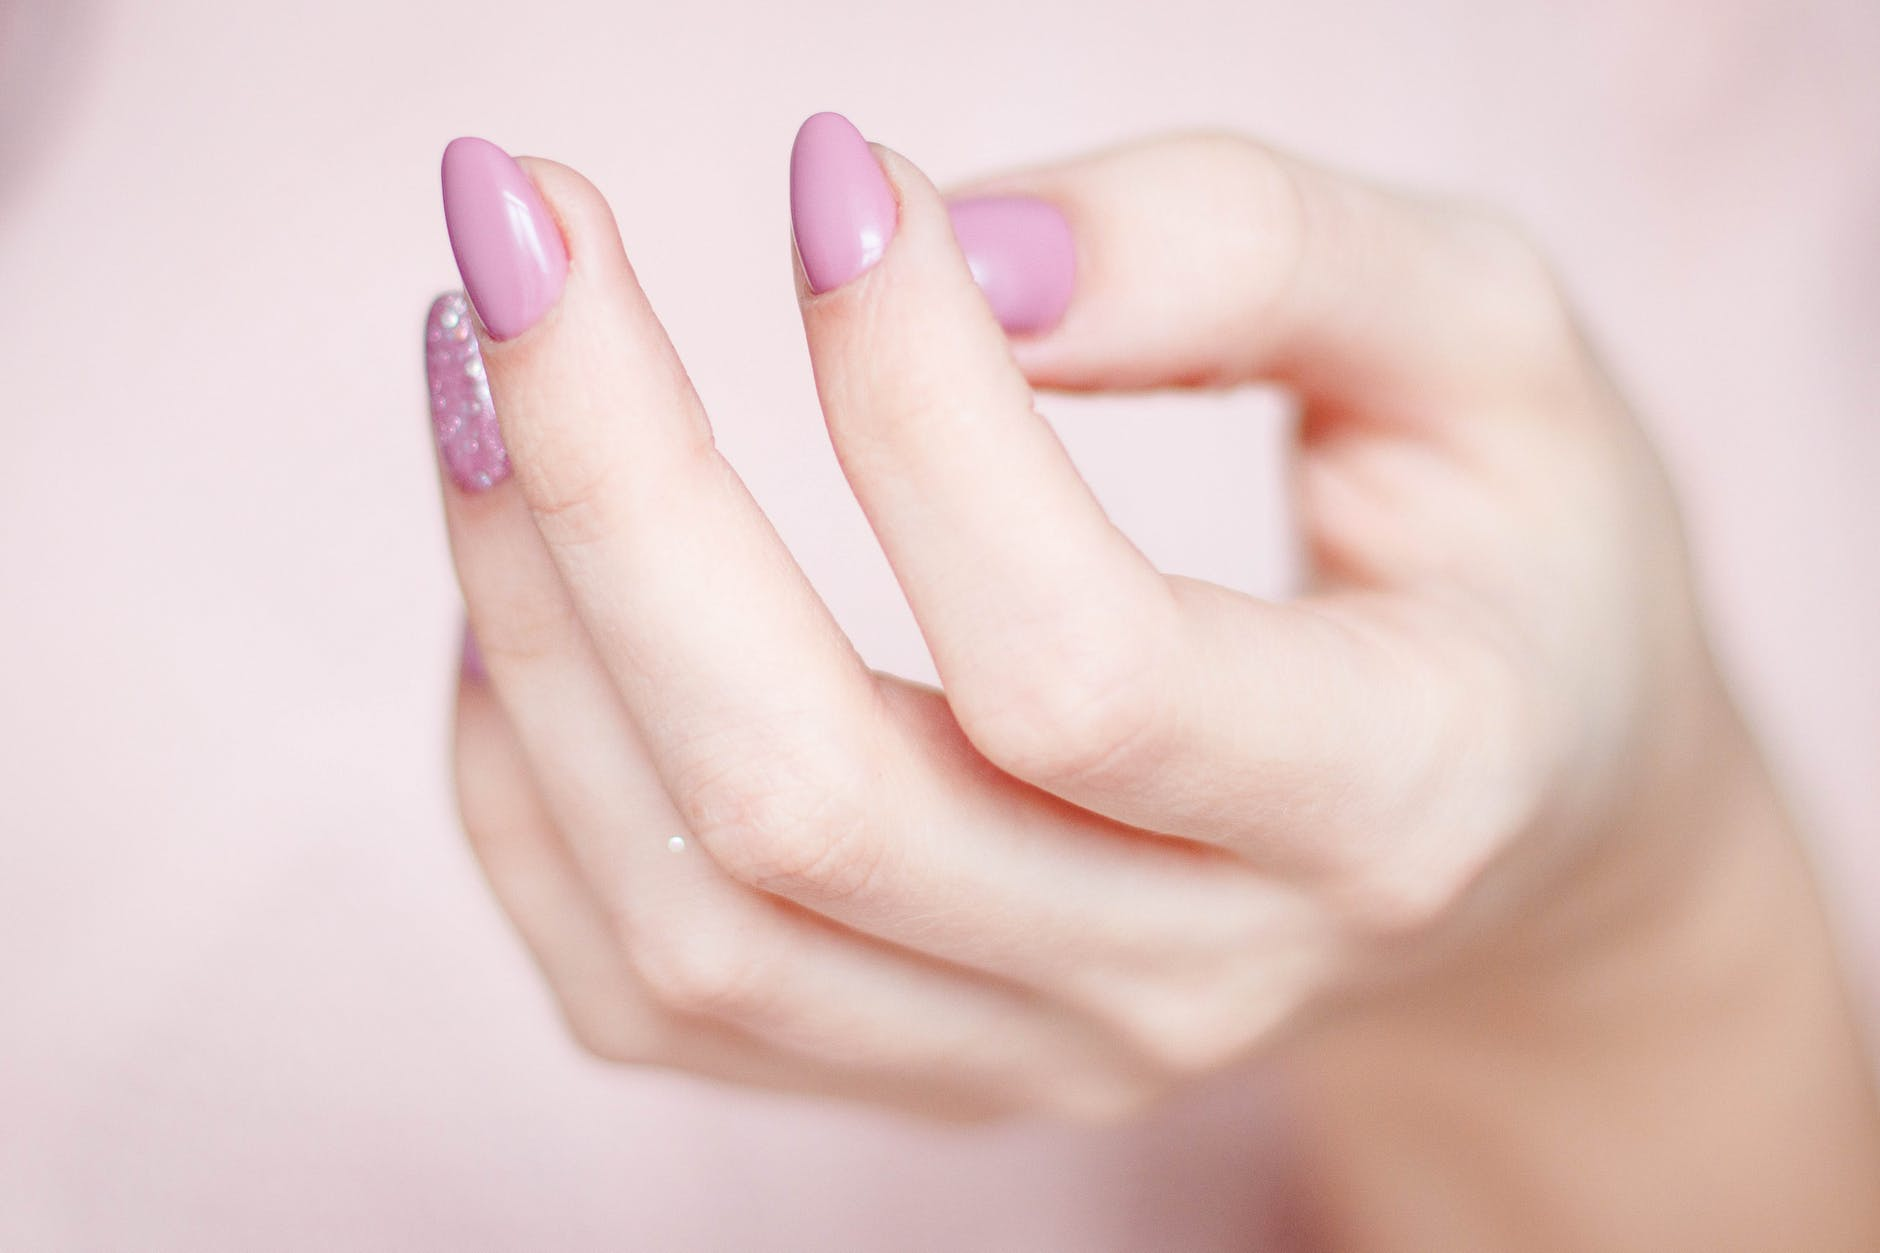 person s hand with pink manicure